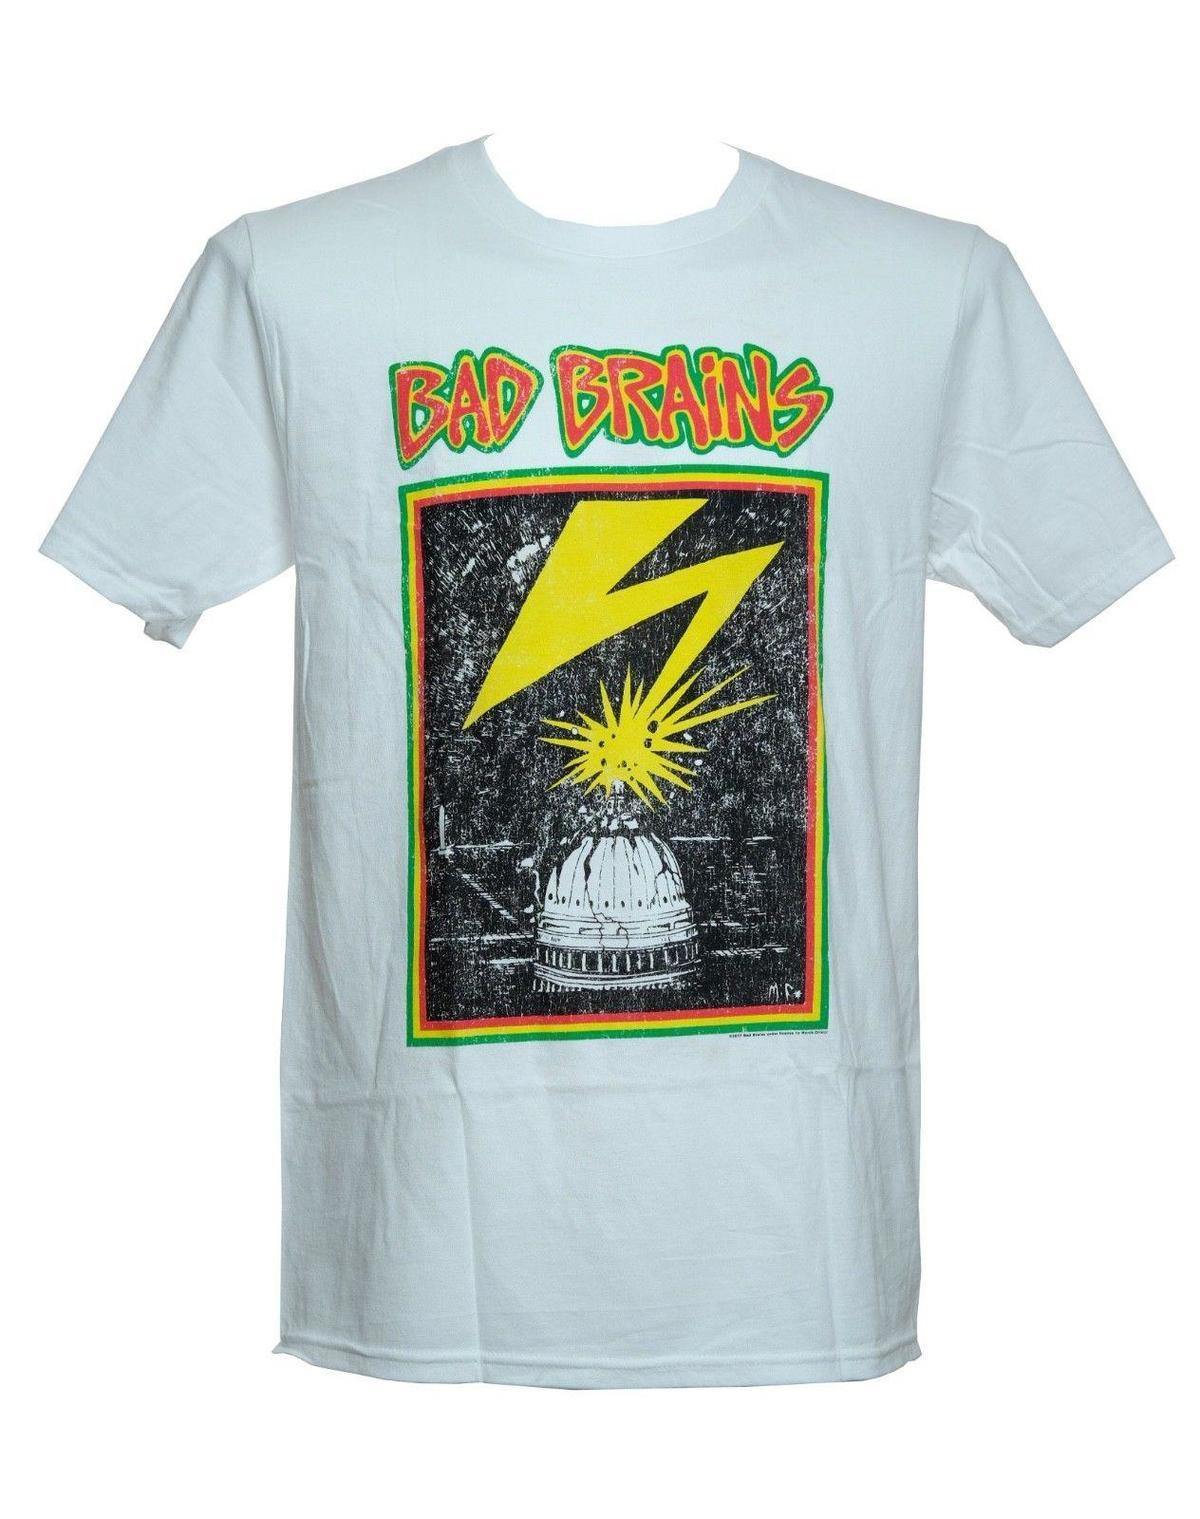 BAD BRAINS - DISTRESSED CAPITOL WHITE - Official Licensed T-Shirt - New 2XL ONLY